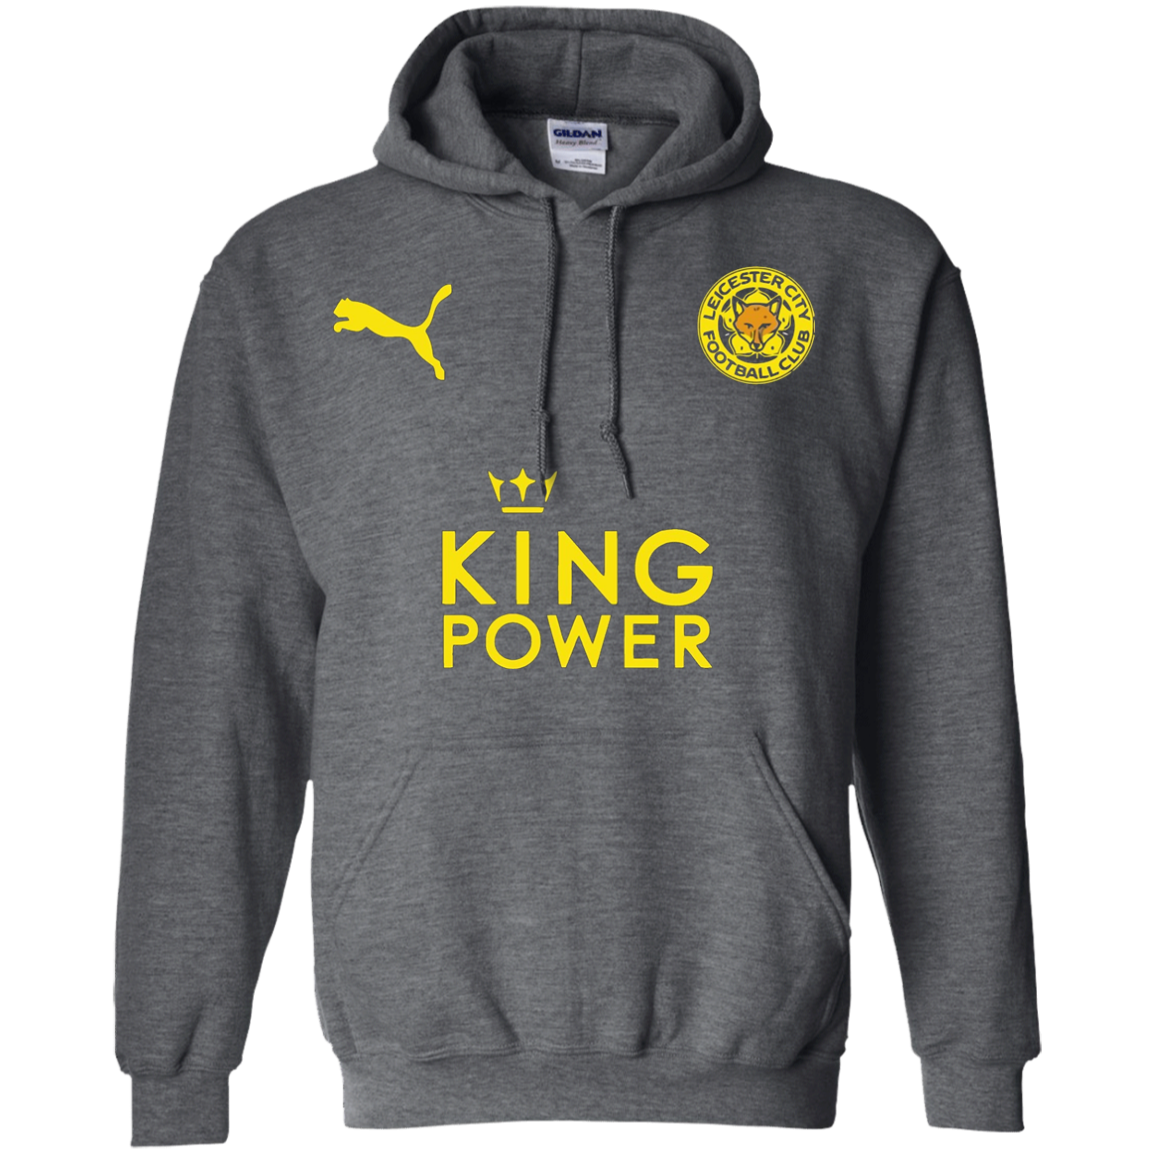 King Power Leicester City Fans T-Shirt